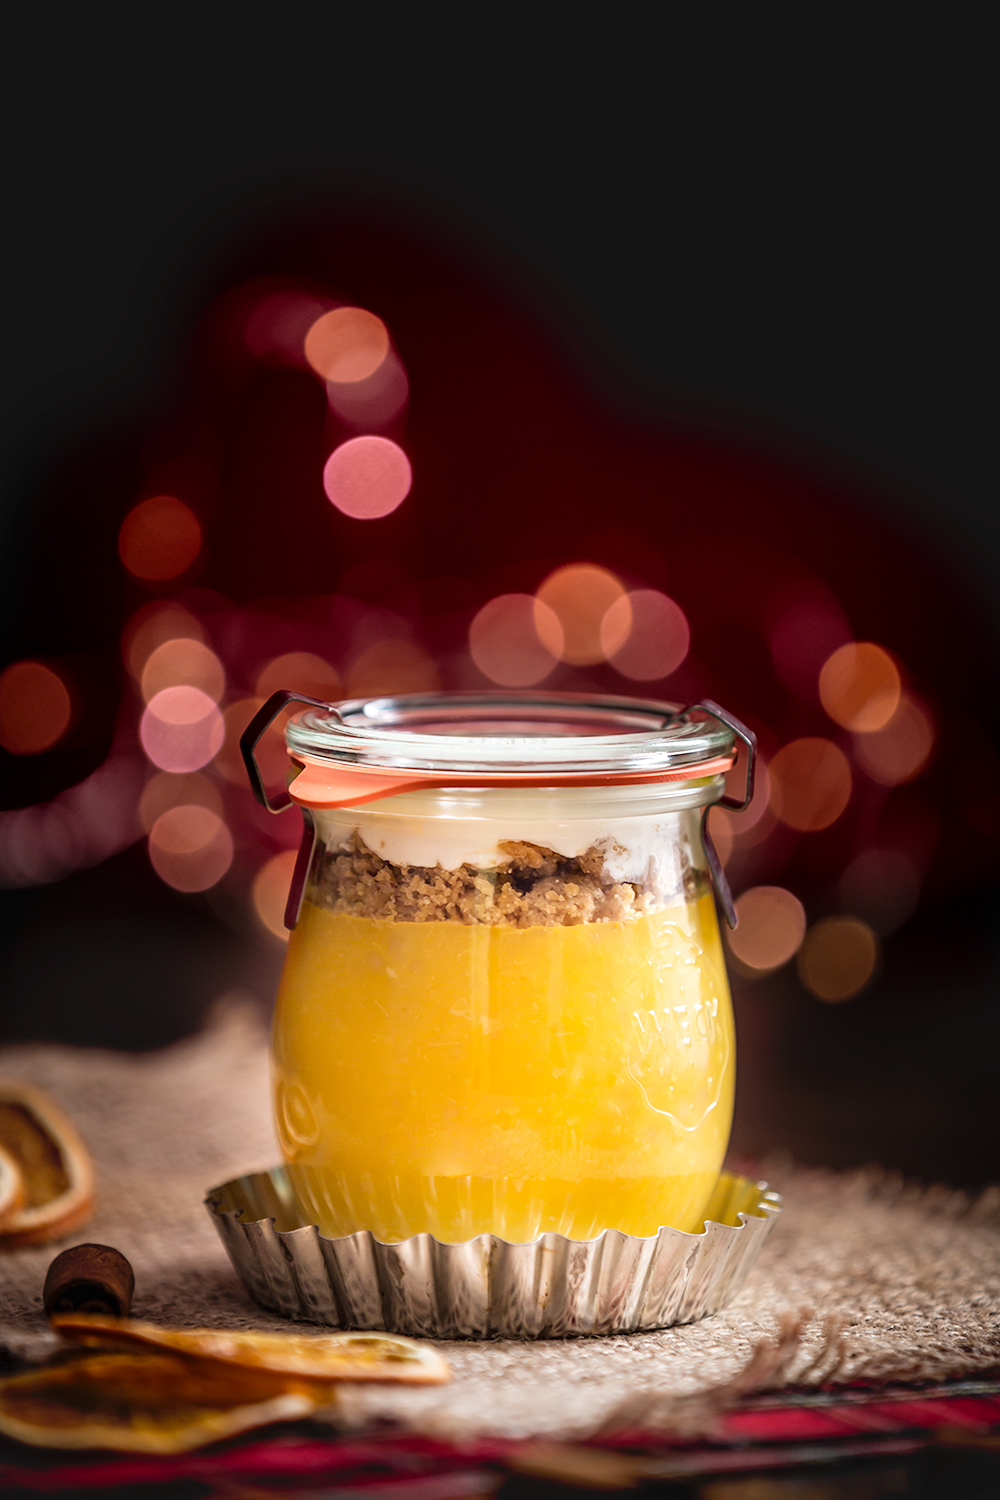 VEGAN Orange TAPIOCA PUDDING - Tapioca pudding arancia e cannella- Budino vegan all'acqua senza grassi #vegan #glutenfree #fatfree #xmas